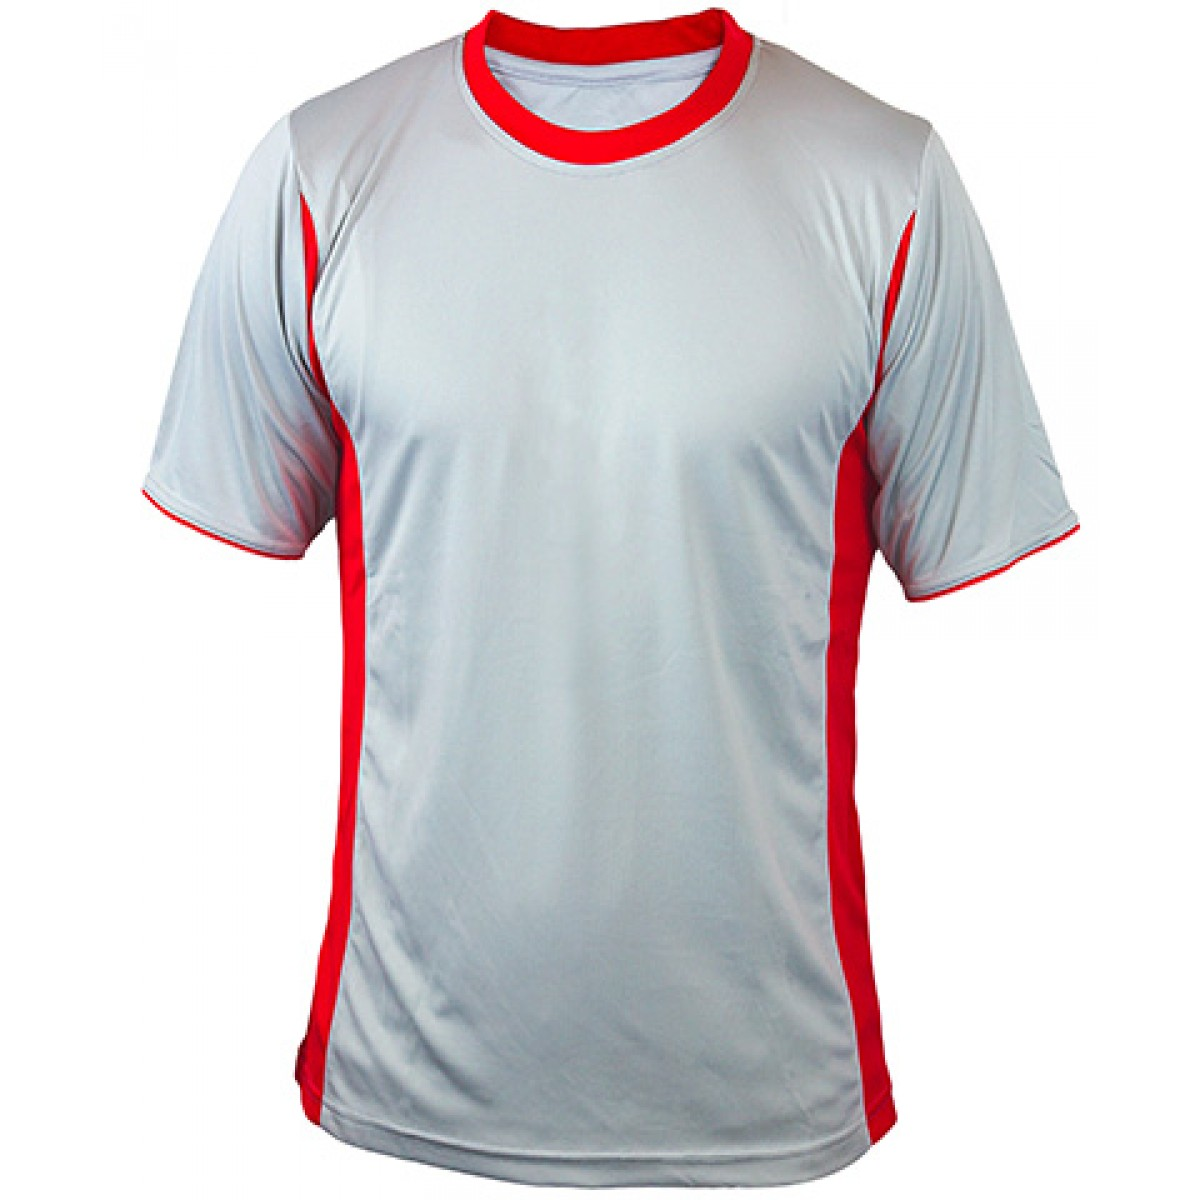 Short Sleeves Performance Fit With Side Insert